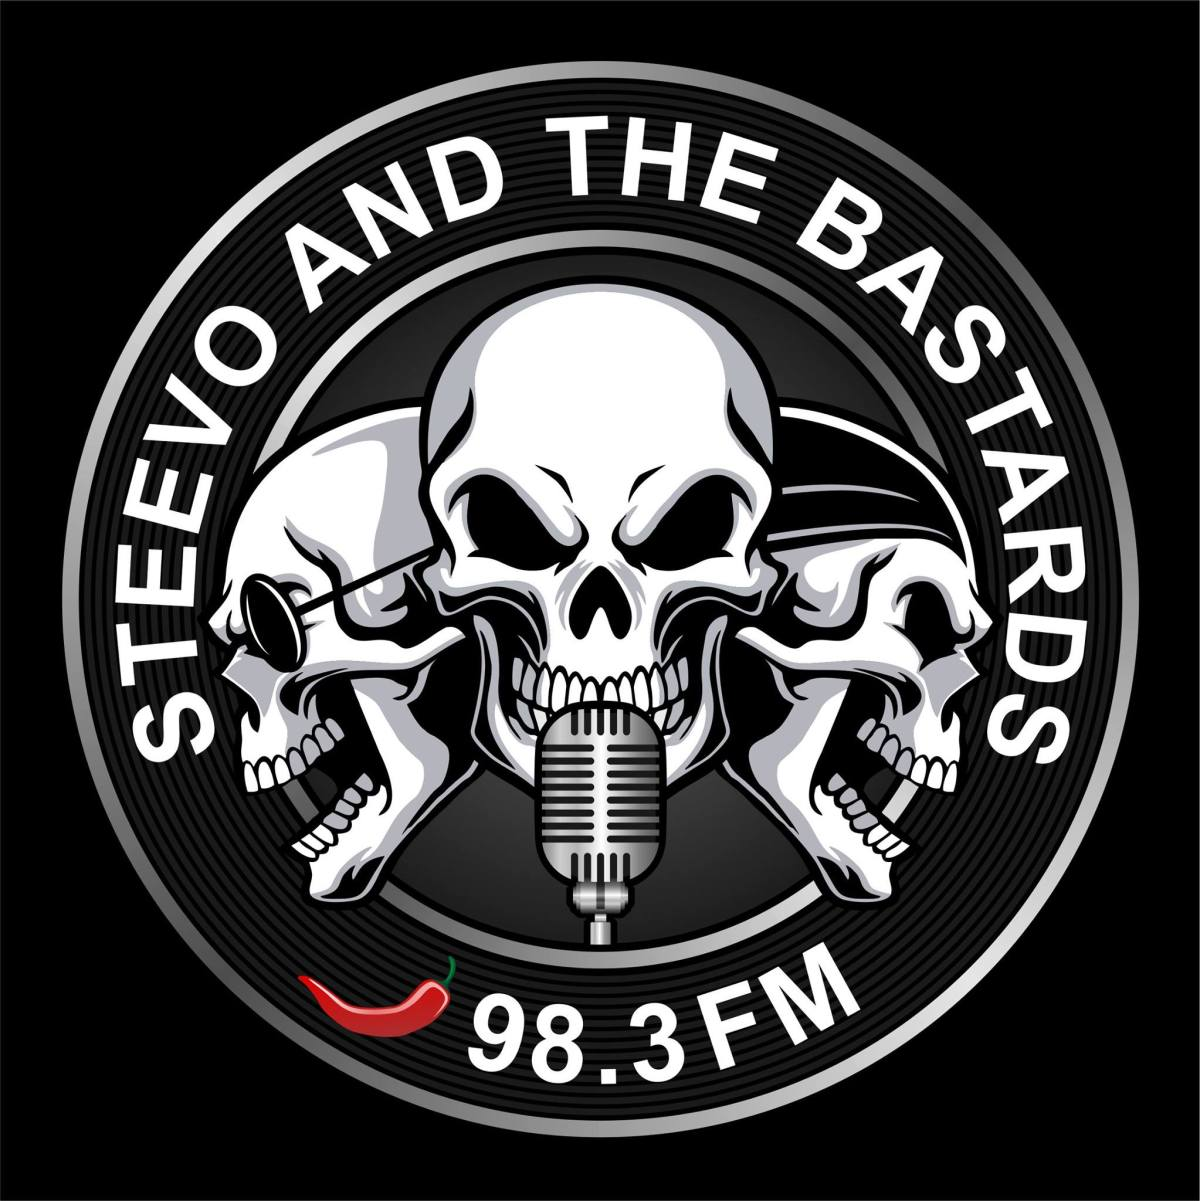 Steevo And The Bastards on 98.3 FM WROGN Radio!